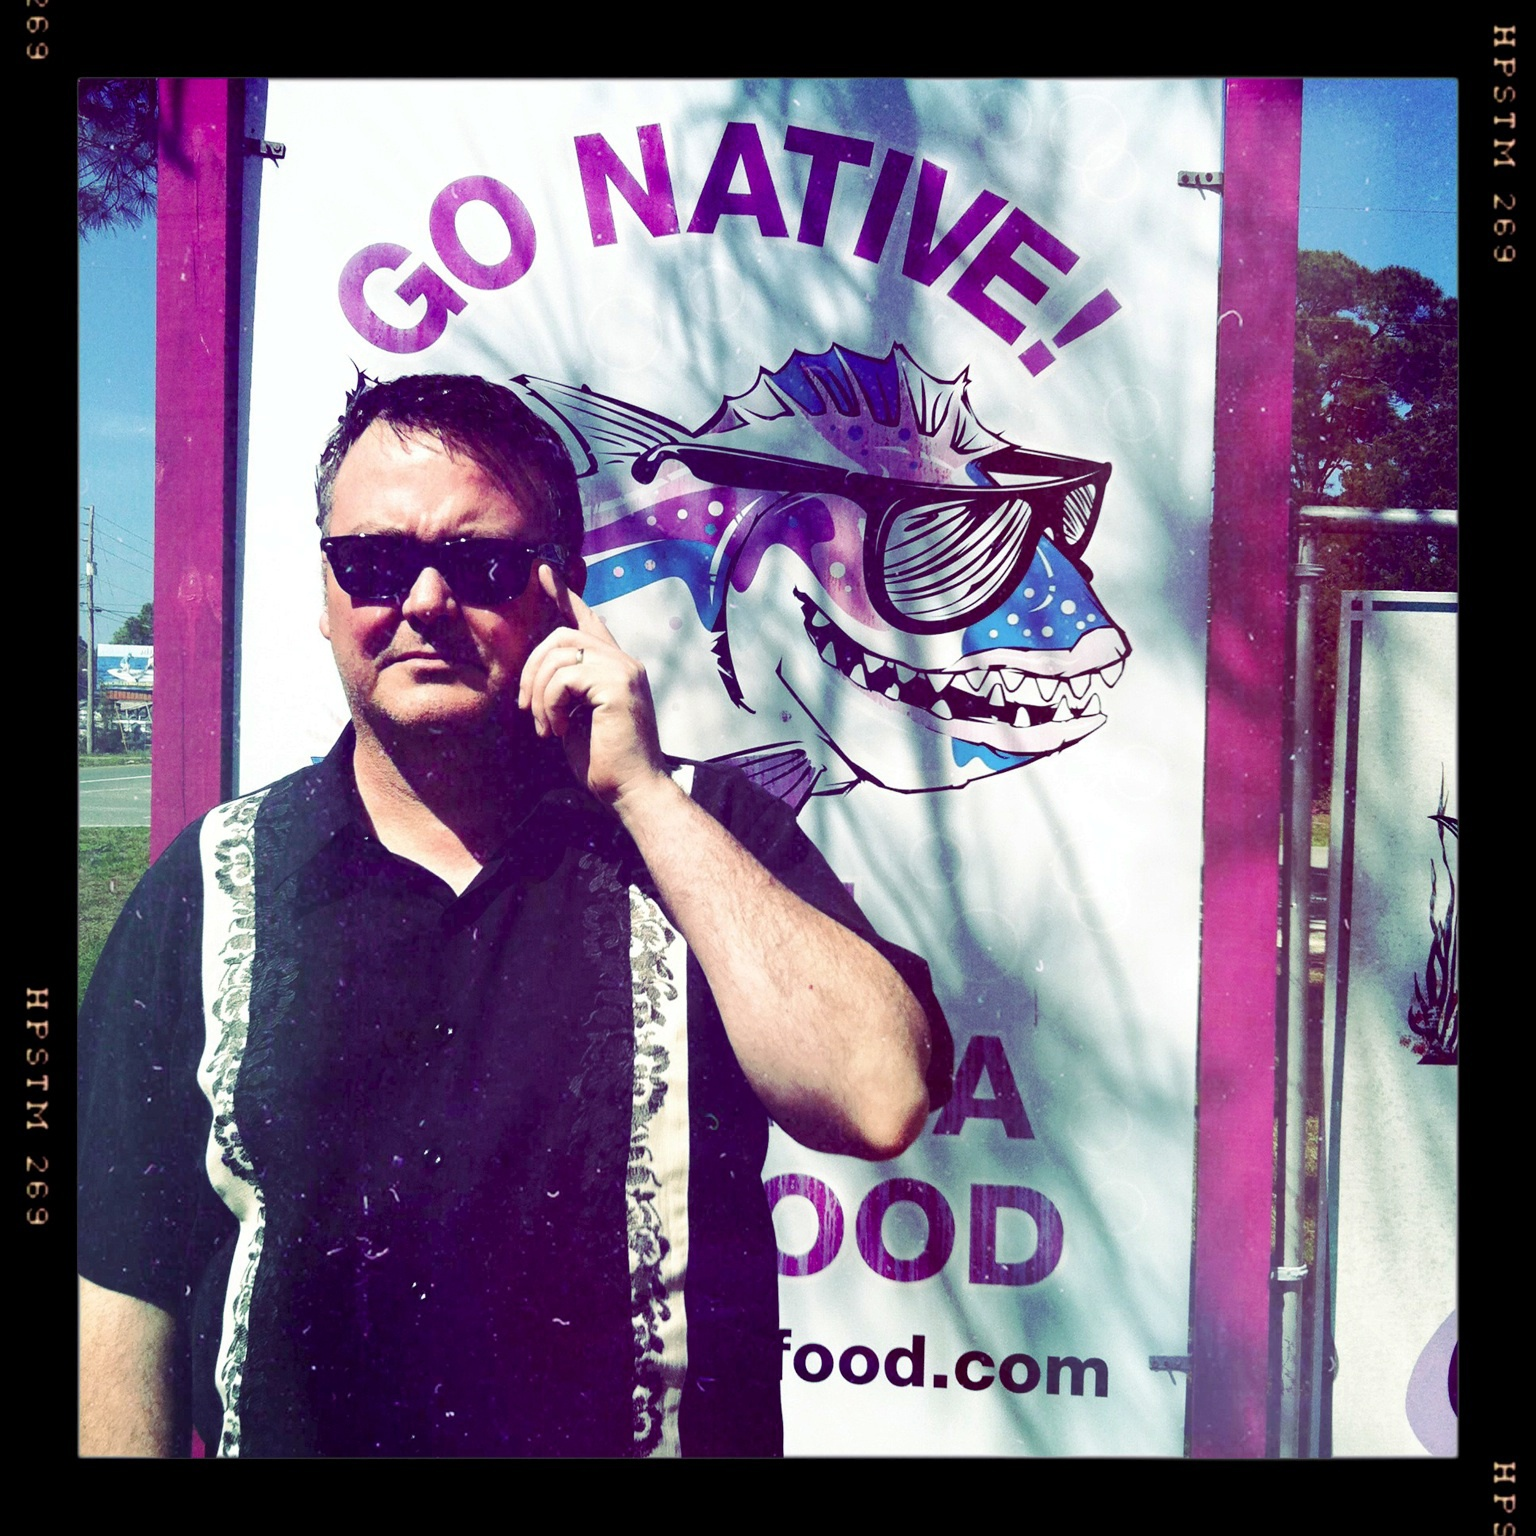 Art Coulson adjusts his eyeglasses in front of a sign that reads Go Native!